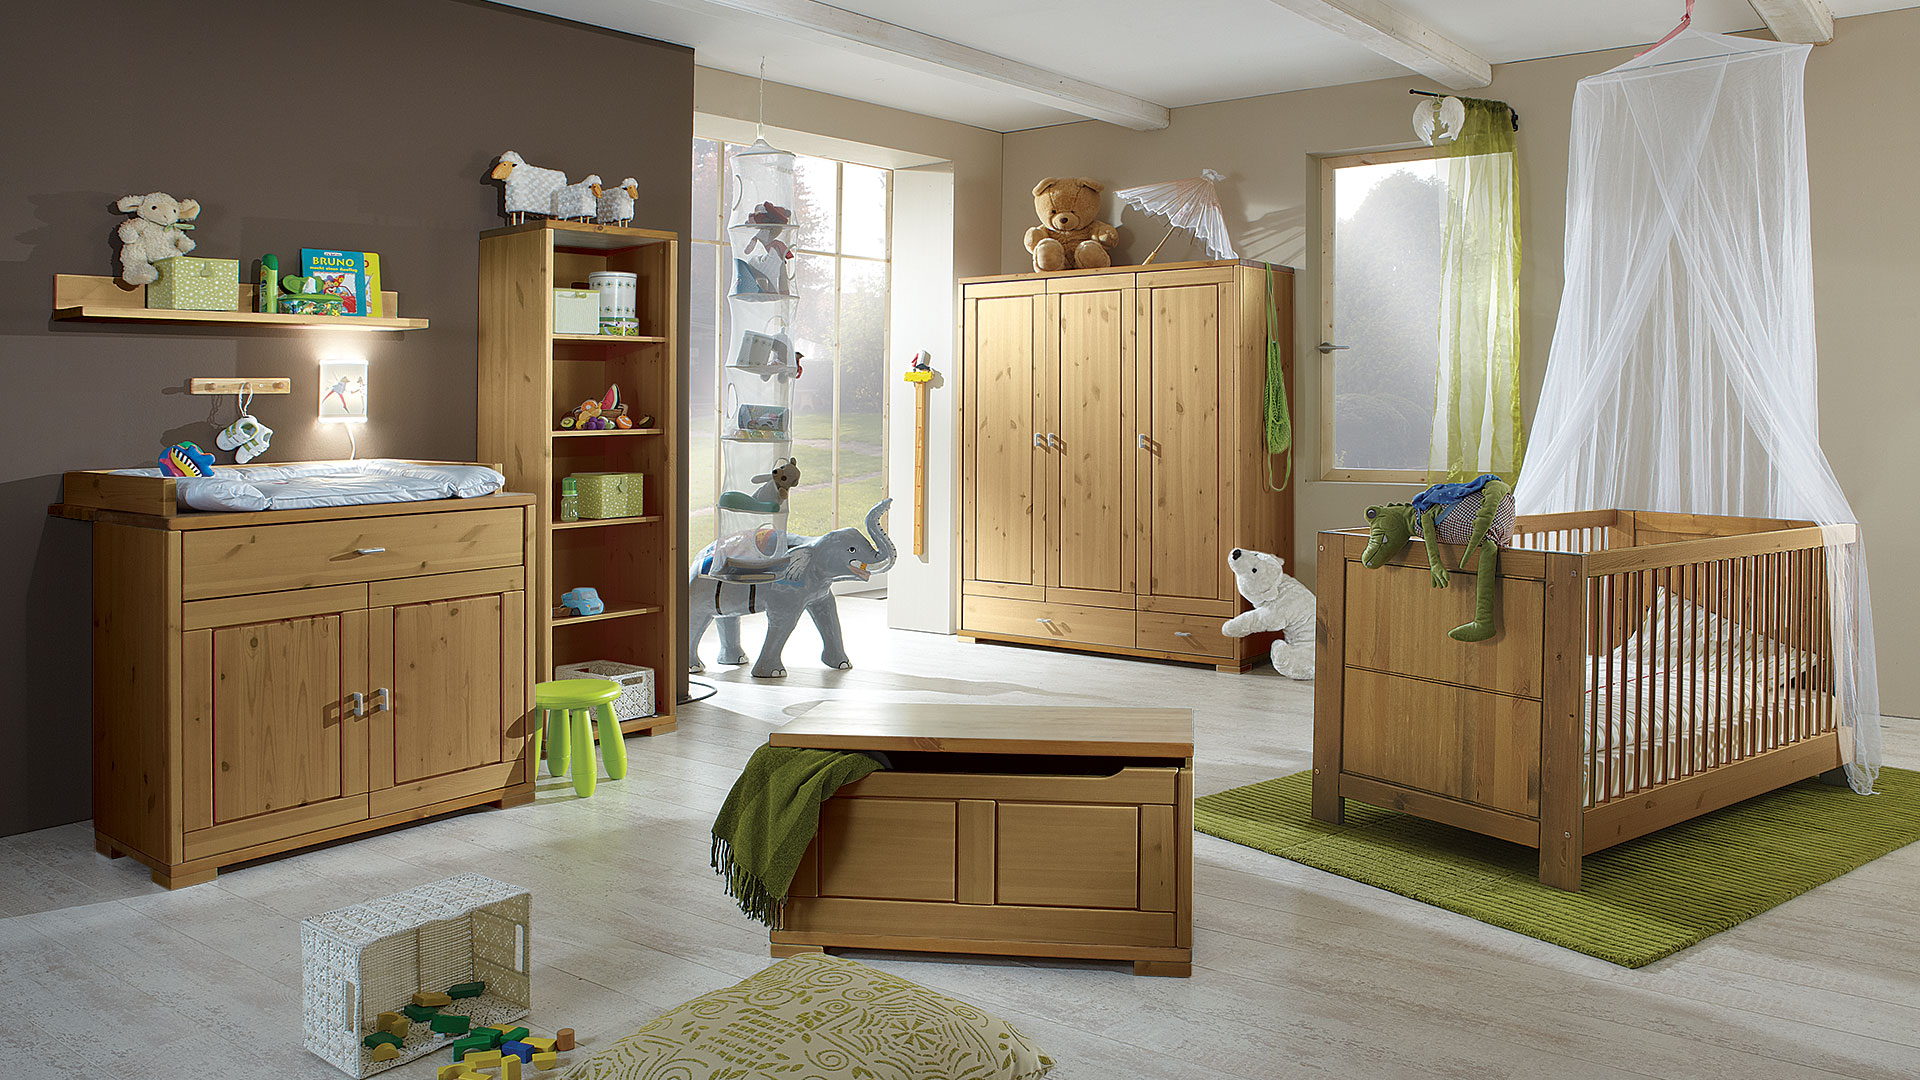 kinderbett piccolino. Black Bedroom Furniture Sets. Home Design Ideas